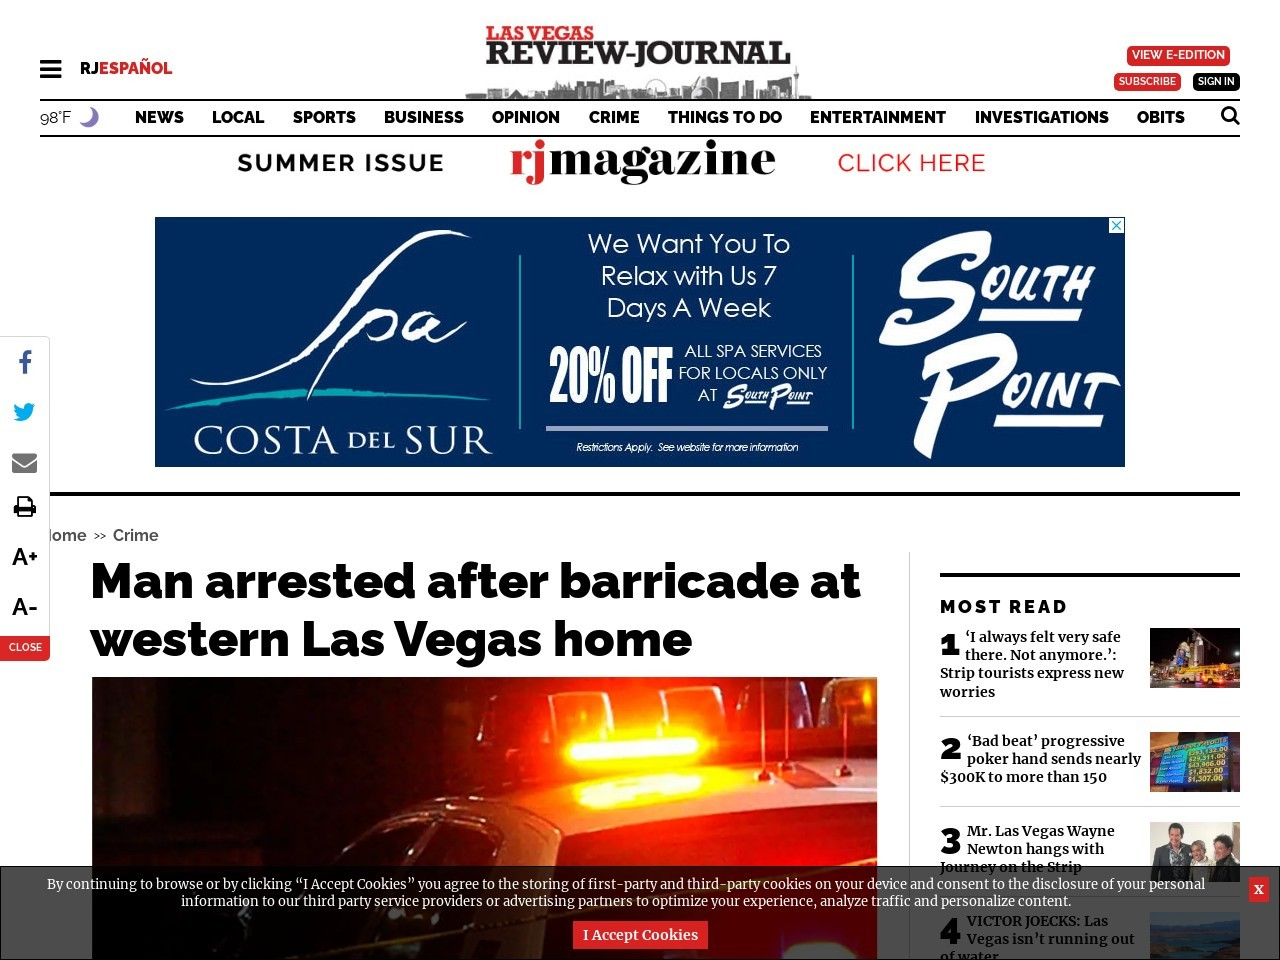 Man arrested after barricade at western Las Vegas home